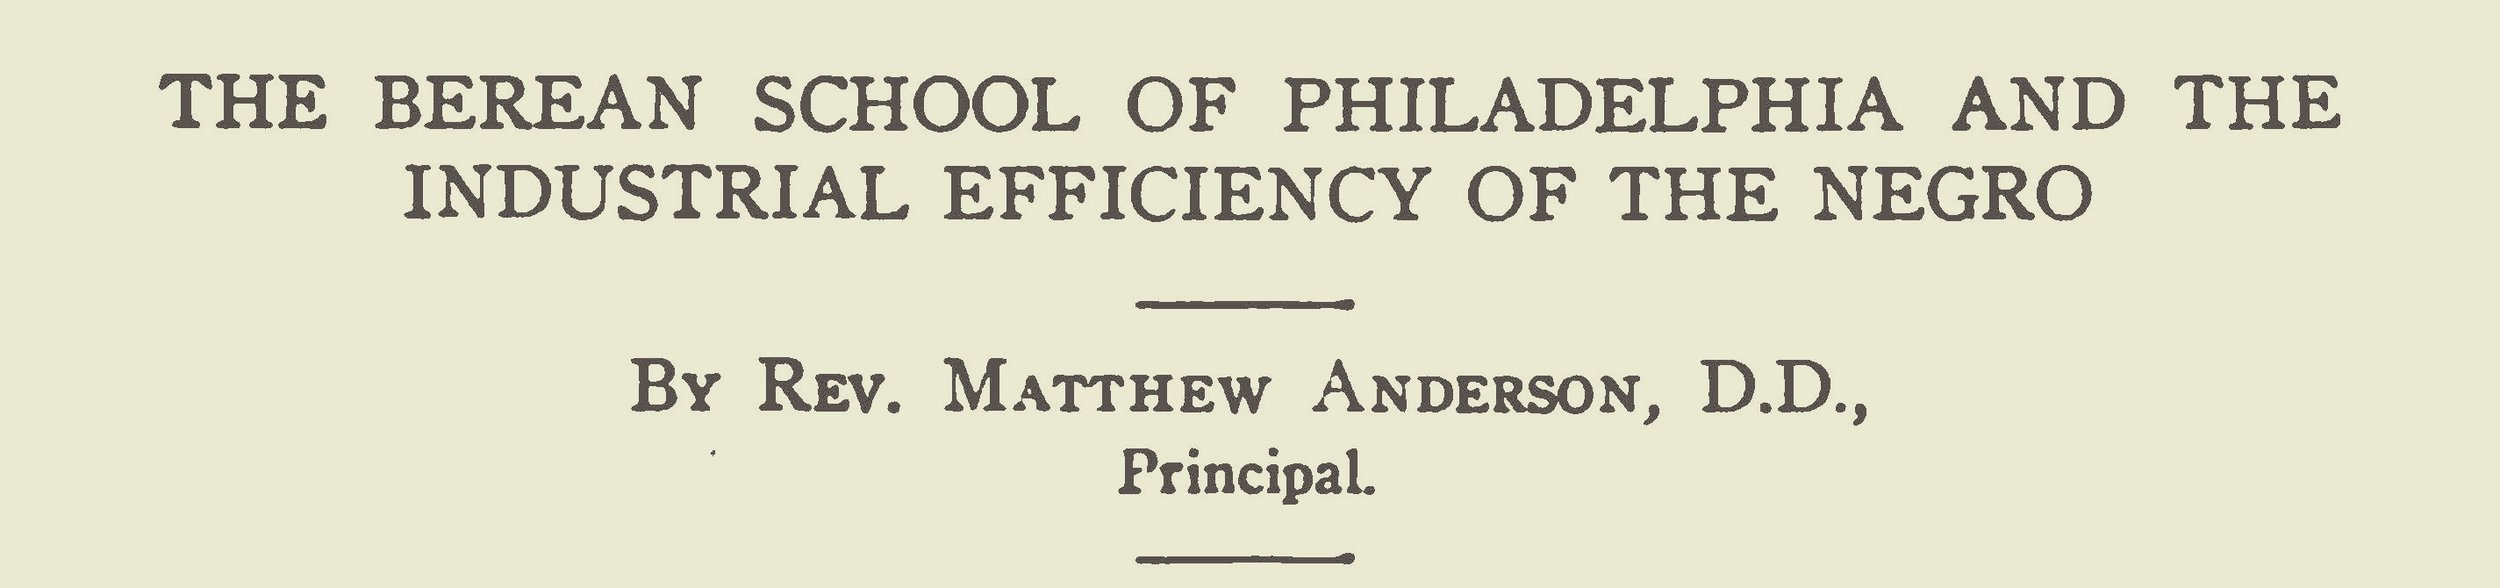 Anderson, Matthew, The Berean School of Philadelphia Title Page.jpg